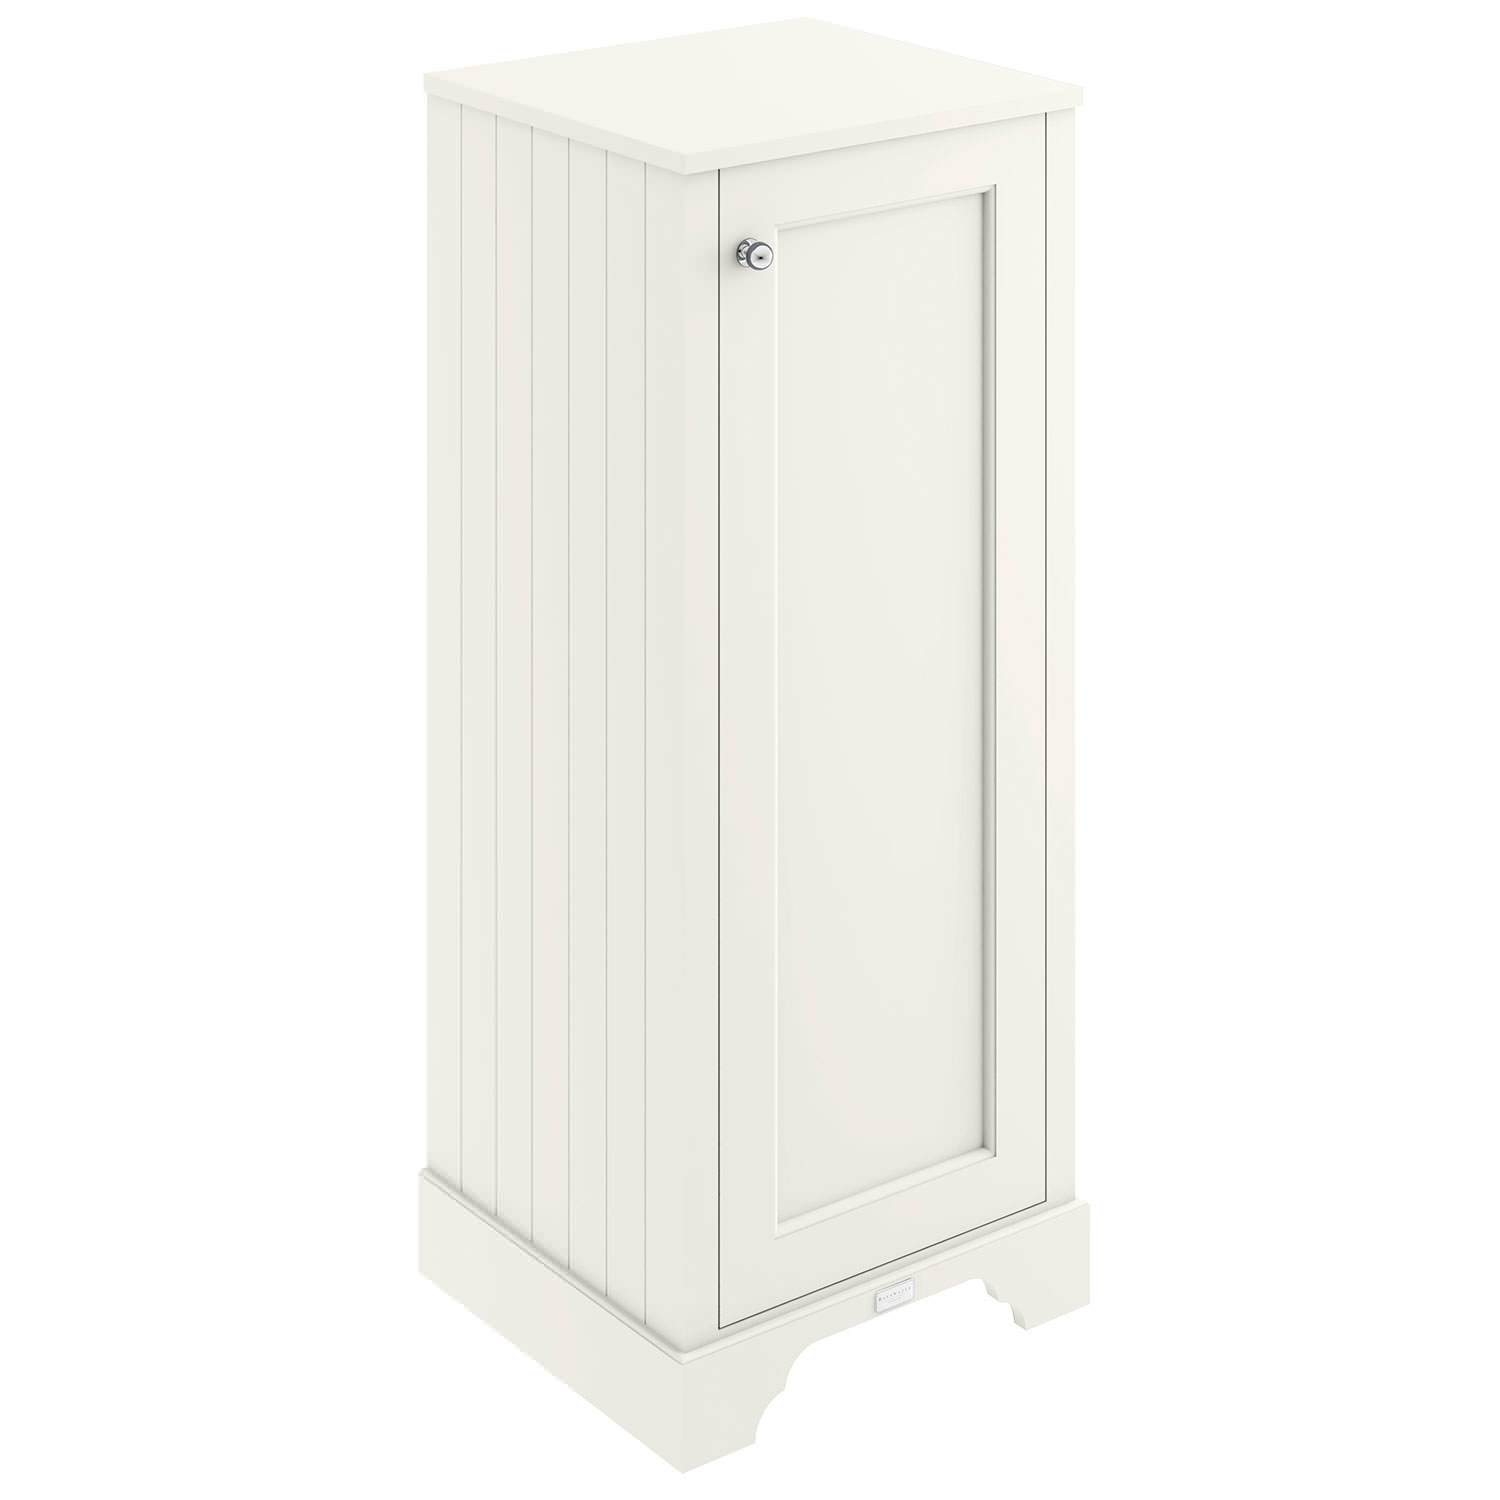 Bayswater 465mm Tall Boy Cabinet Bayf118 More Finishes Available